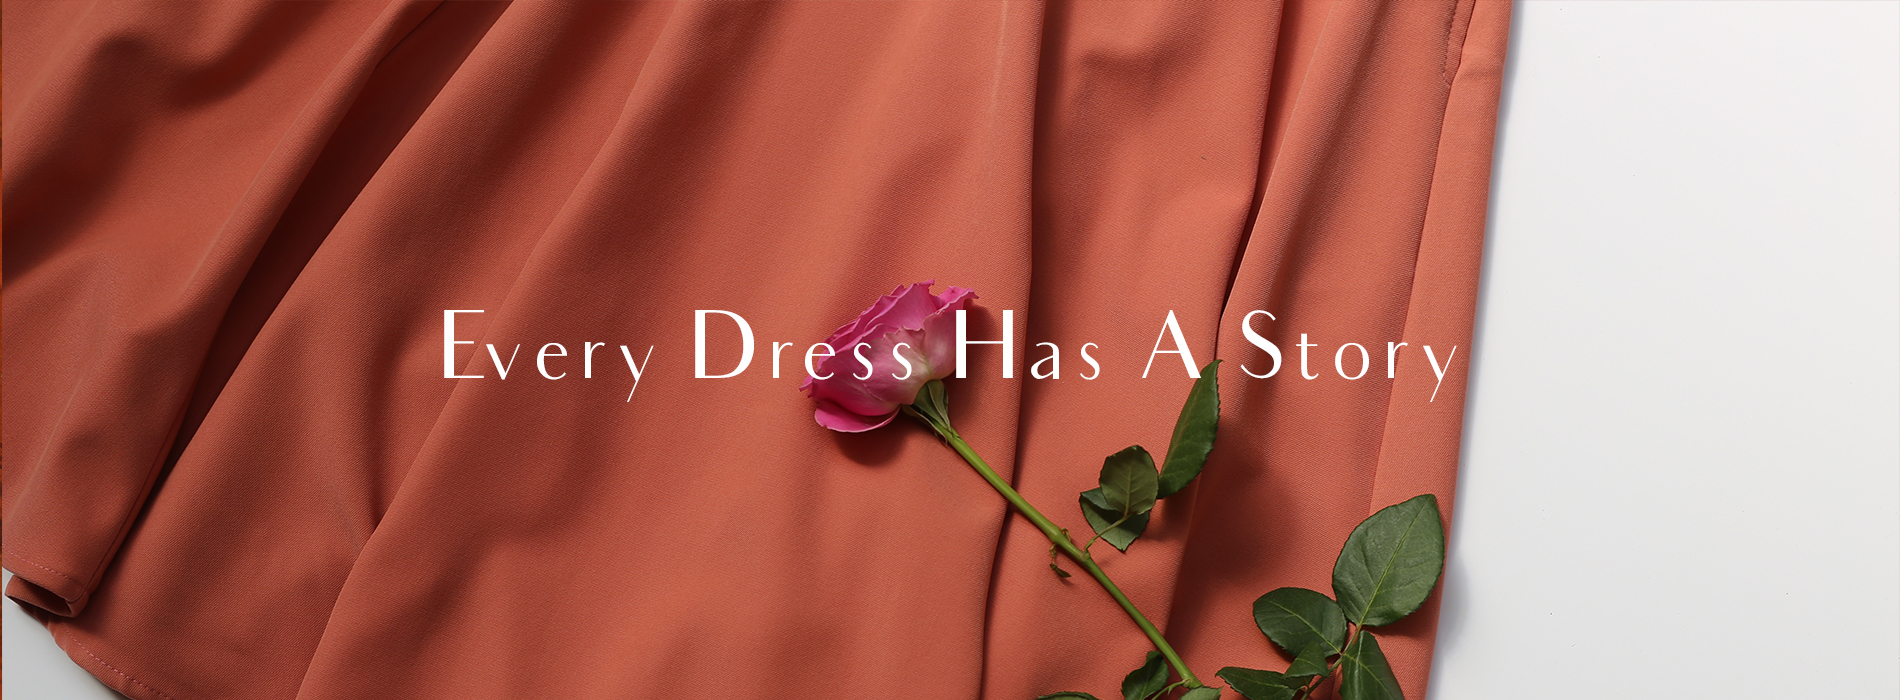 Every Dress Has A Story